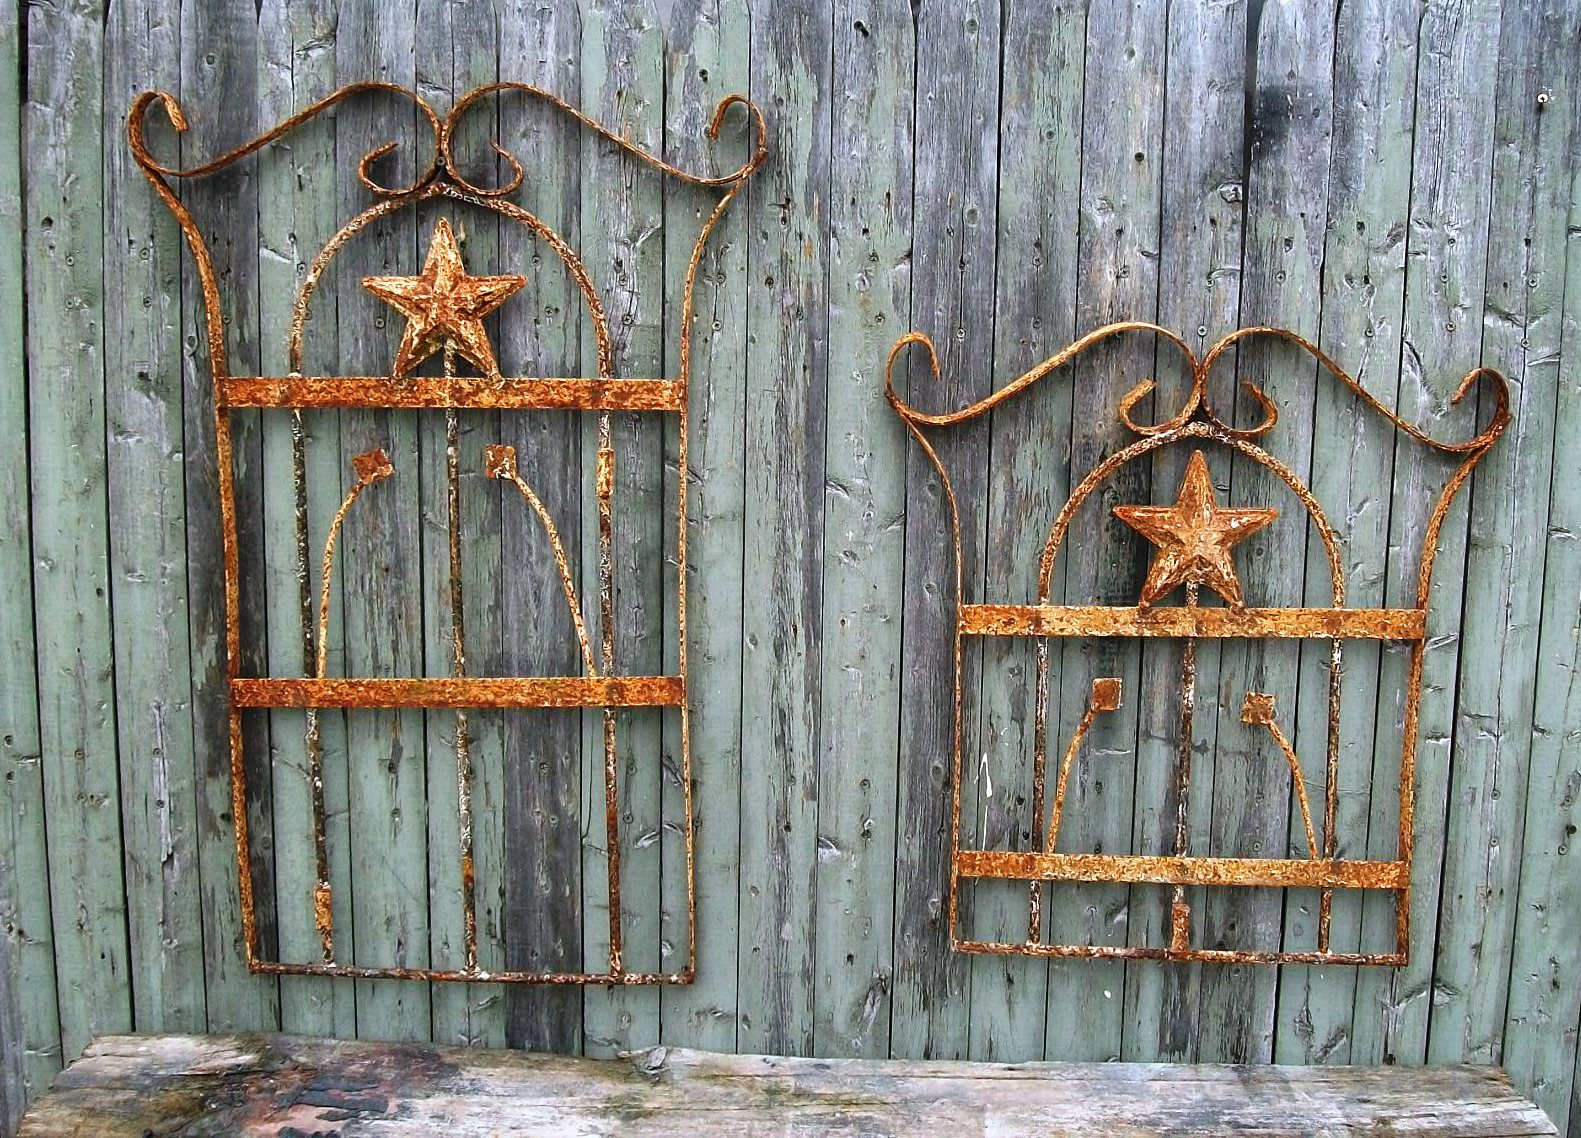 Vintage Wrought Iron Outdoor Wall Decor